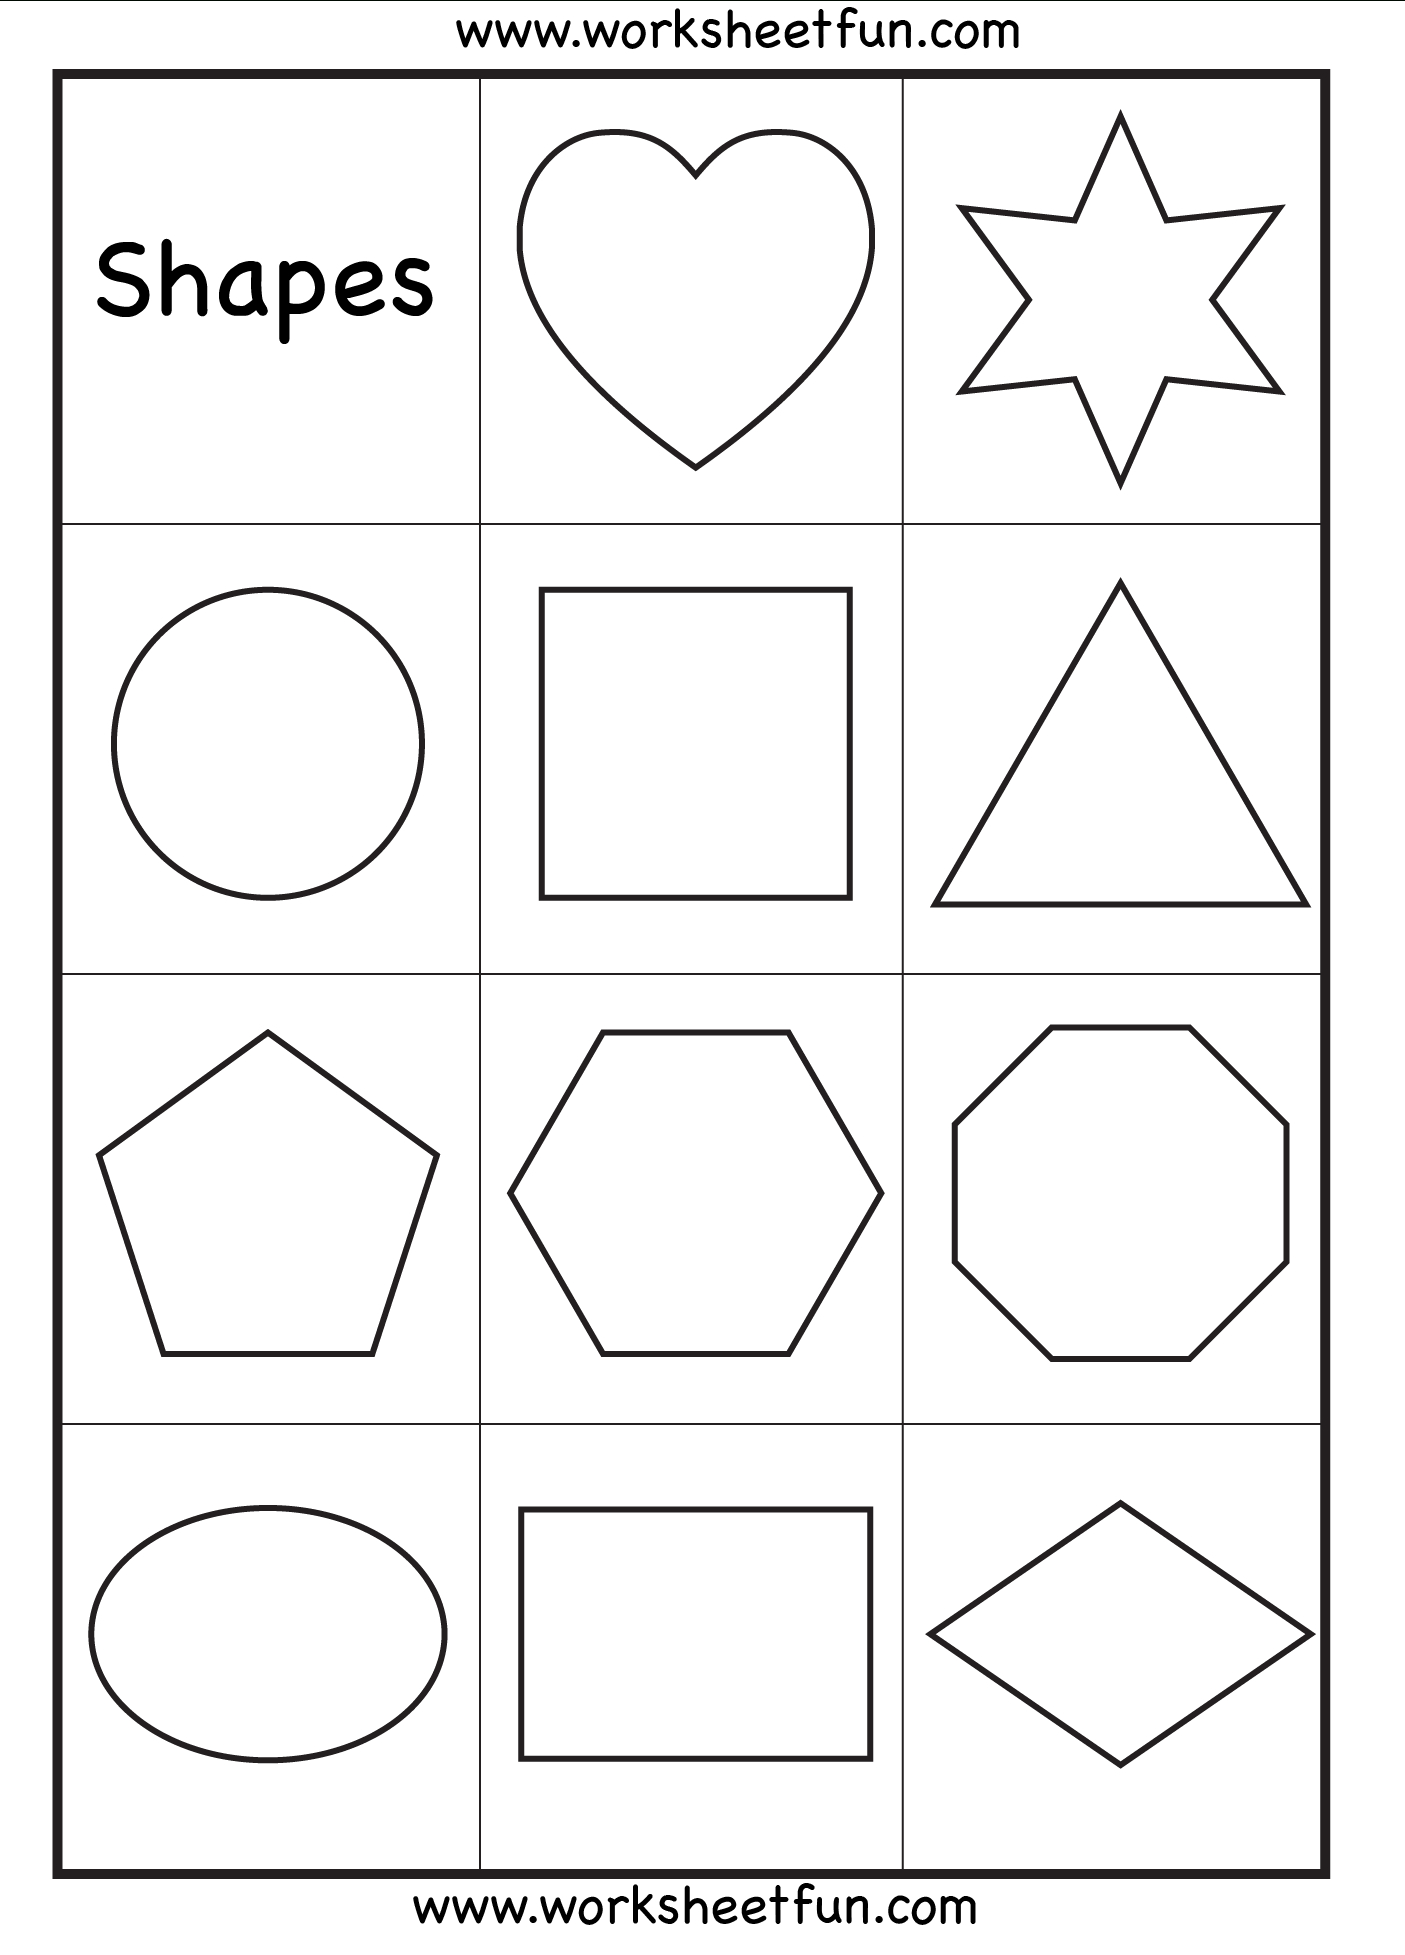 Preschool Shapes, Upper Case Letters, And Lower Case Letters | Printable Shapes Worksheets